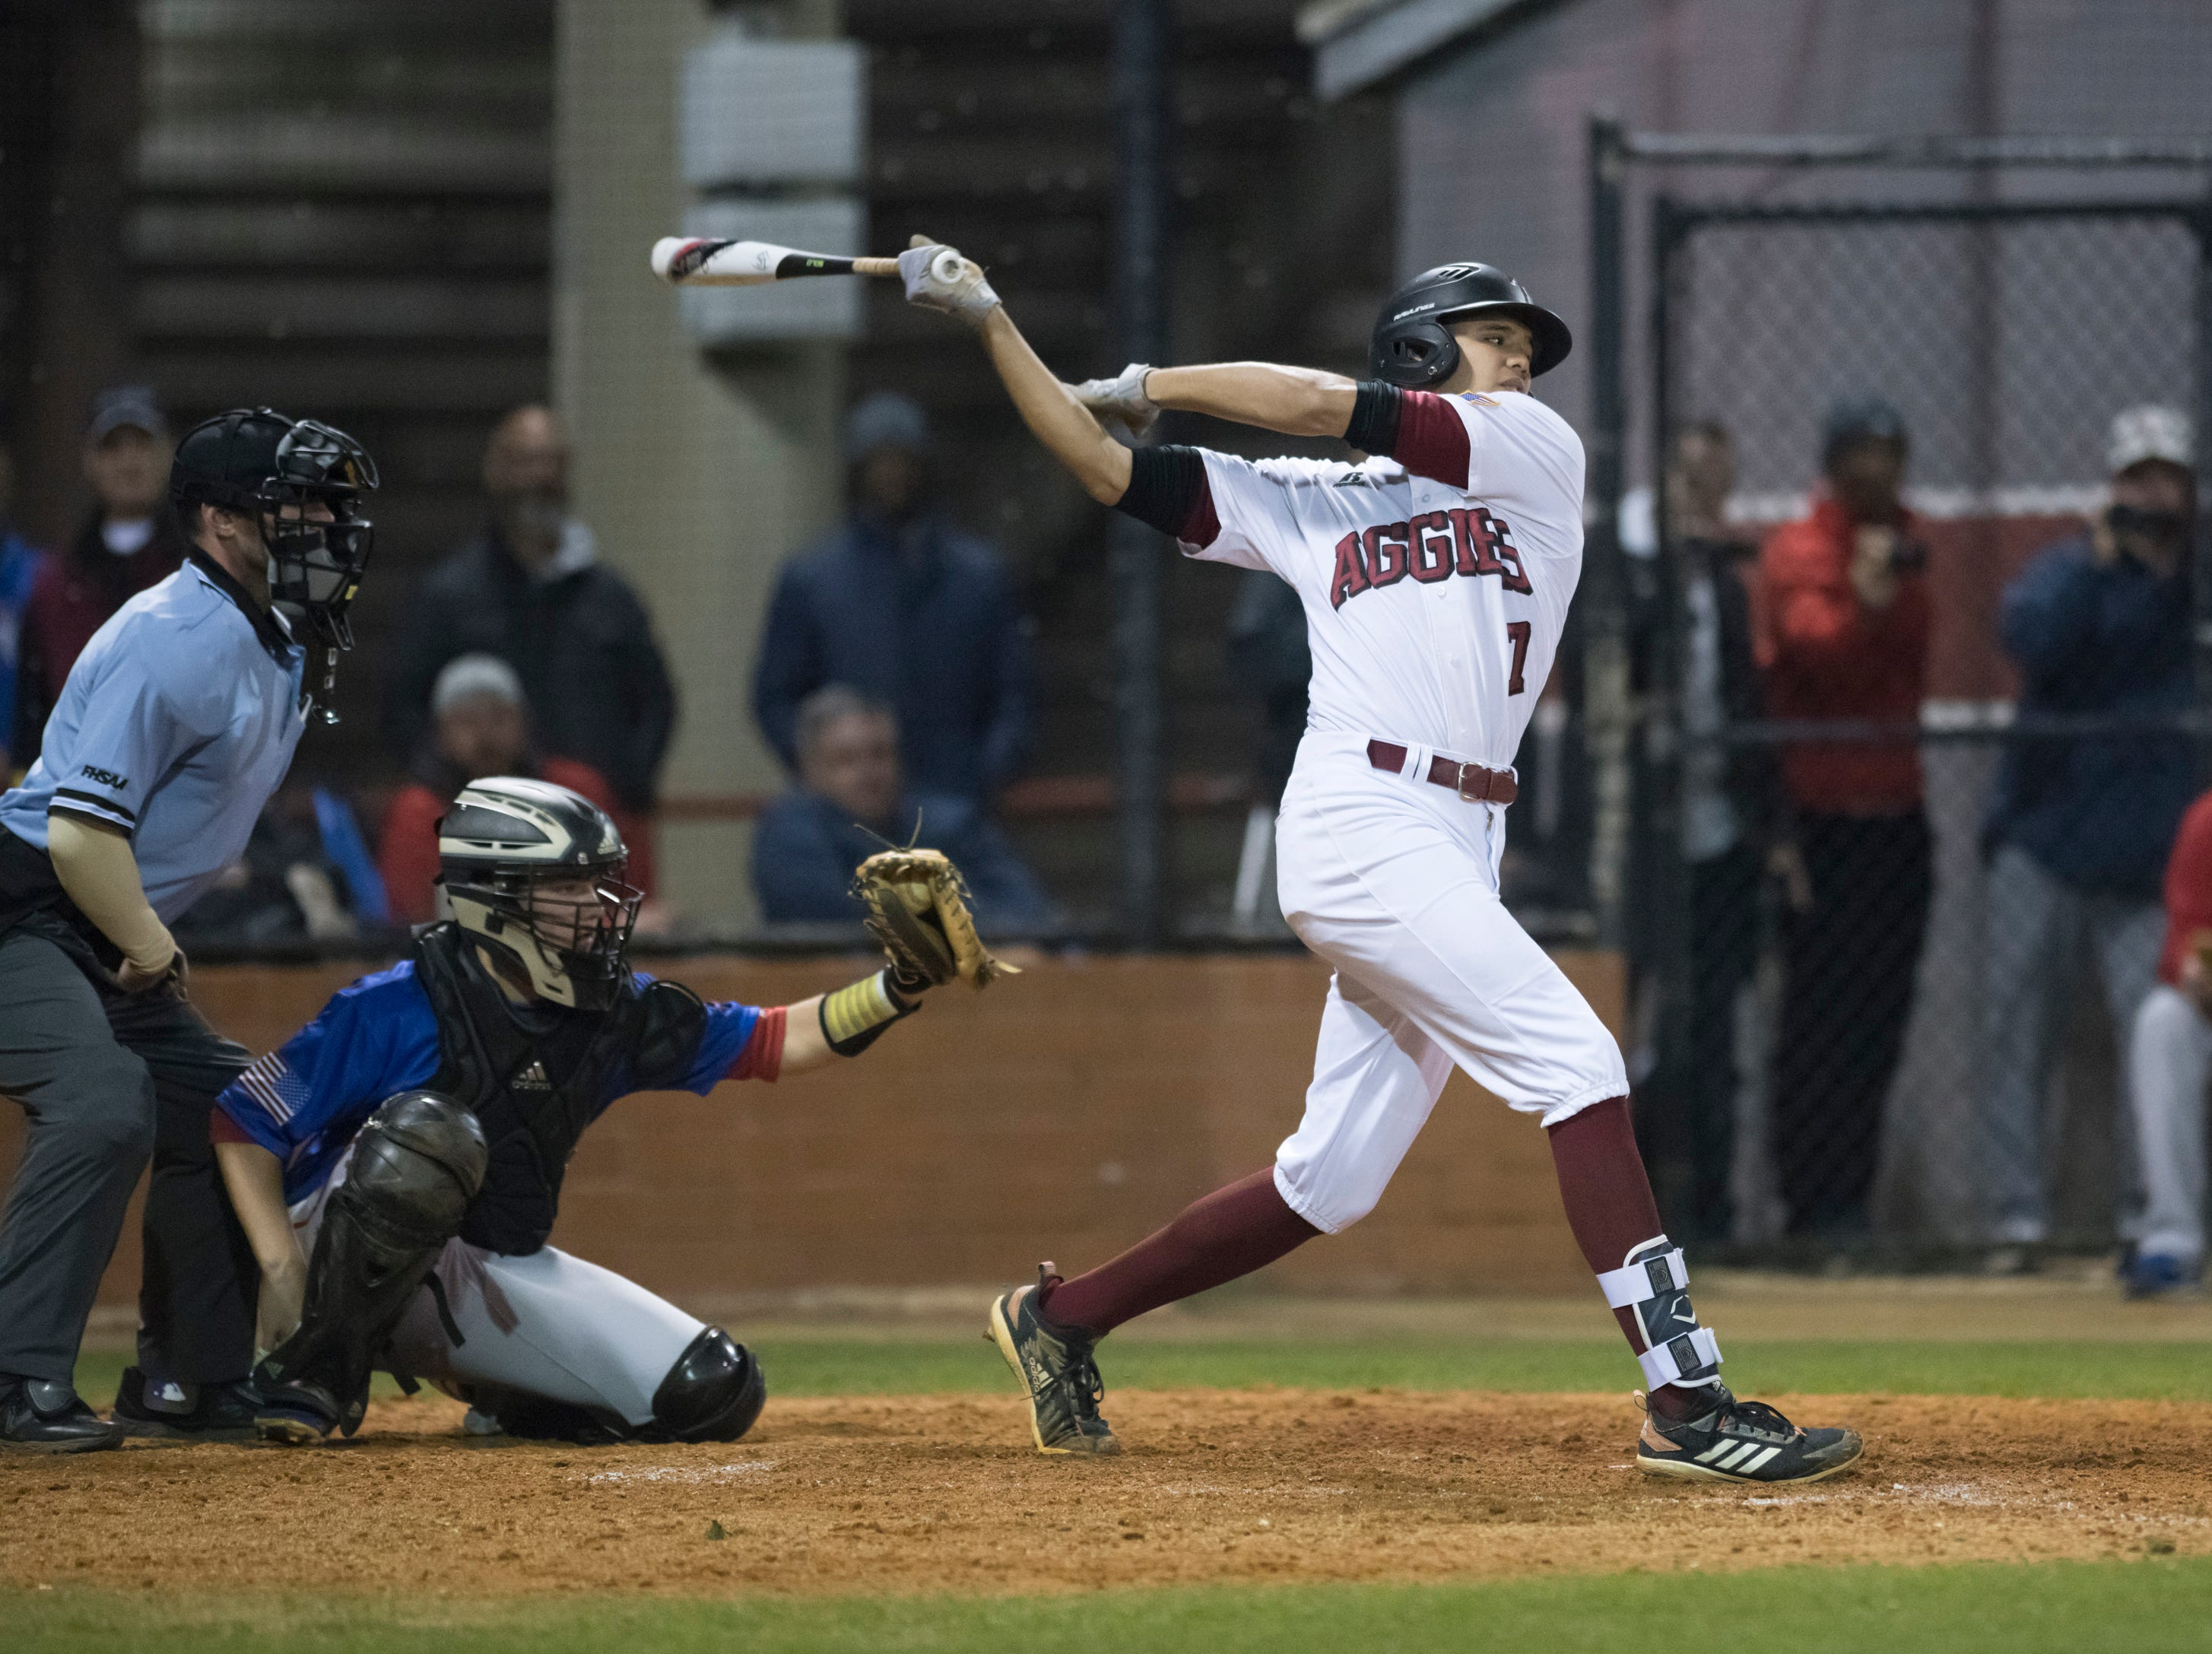 Raymond LaFleur (7) bats during the Pine Forest vs Tate baseball game at Tate High School on Thursday, March 7, 2019.  The Aggies won 4-3.